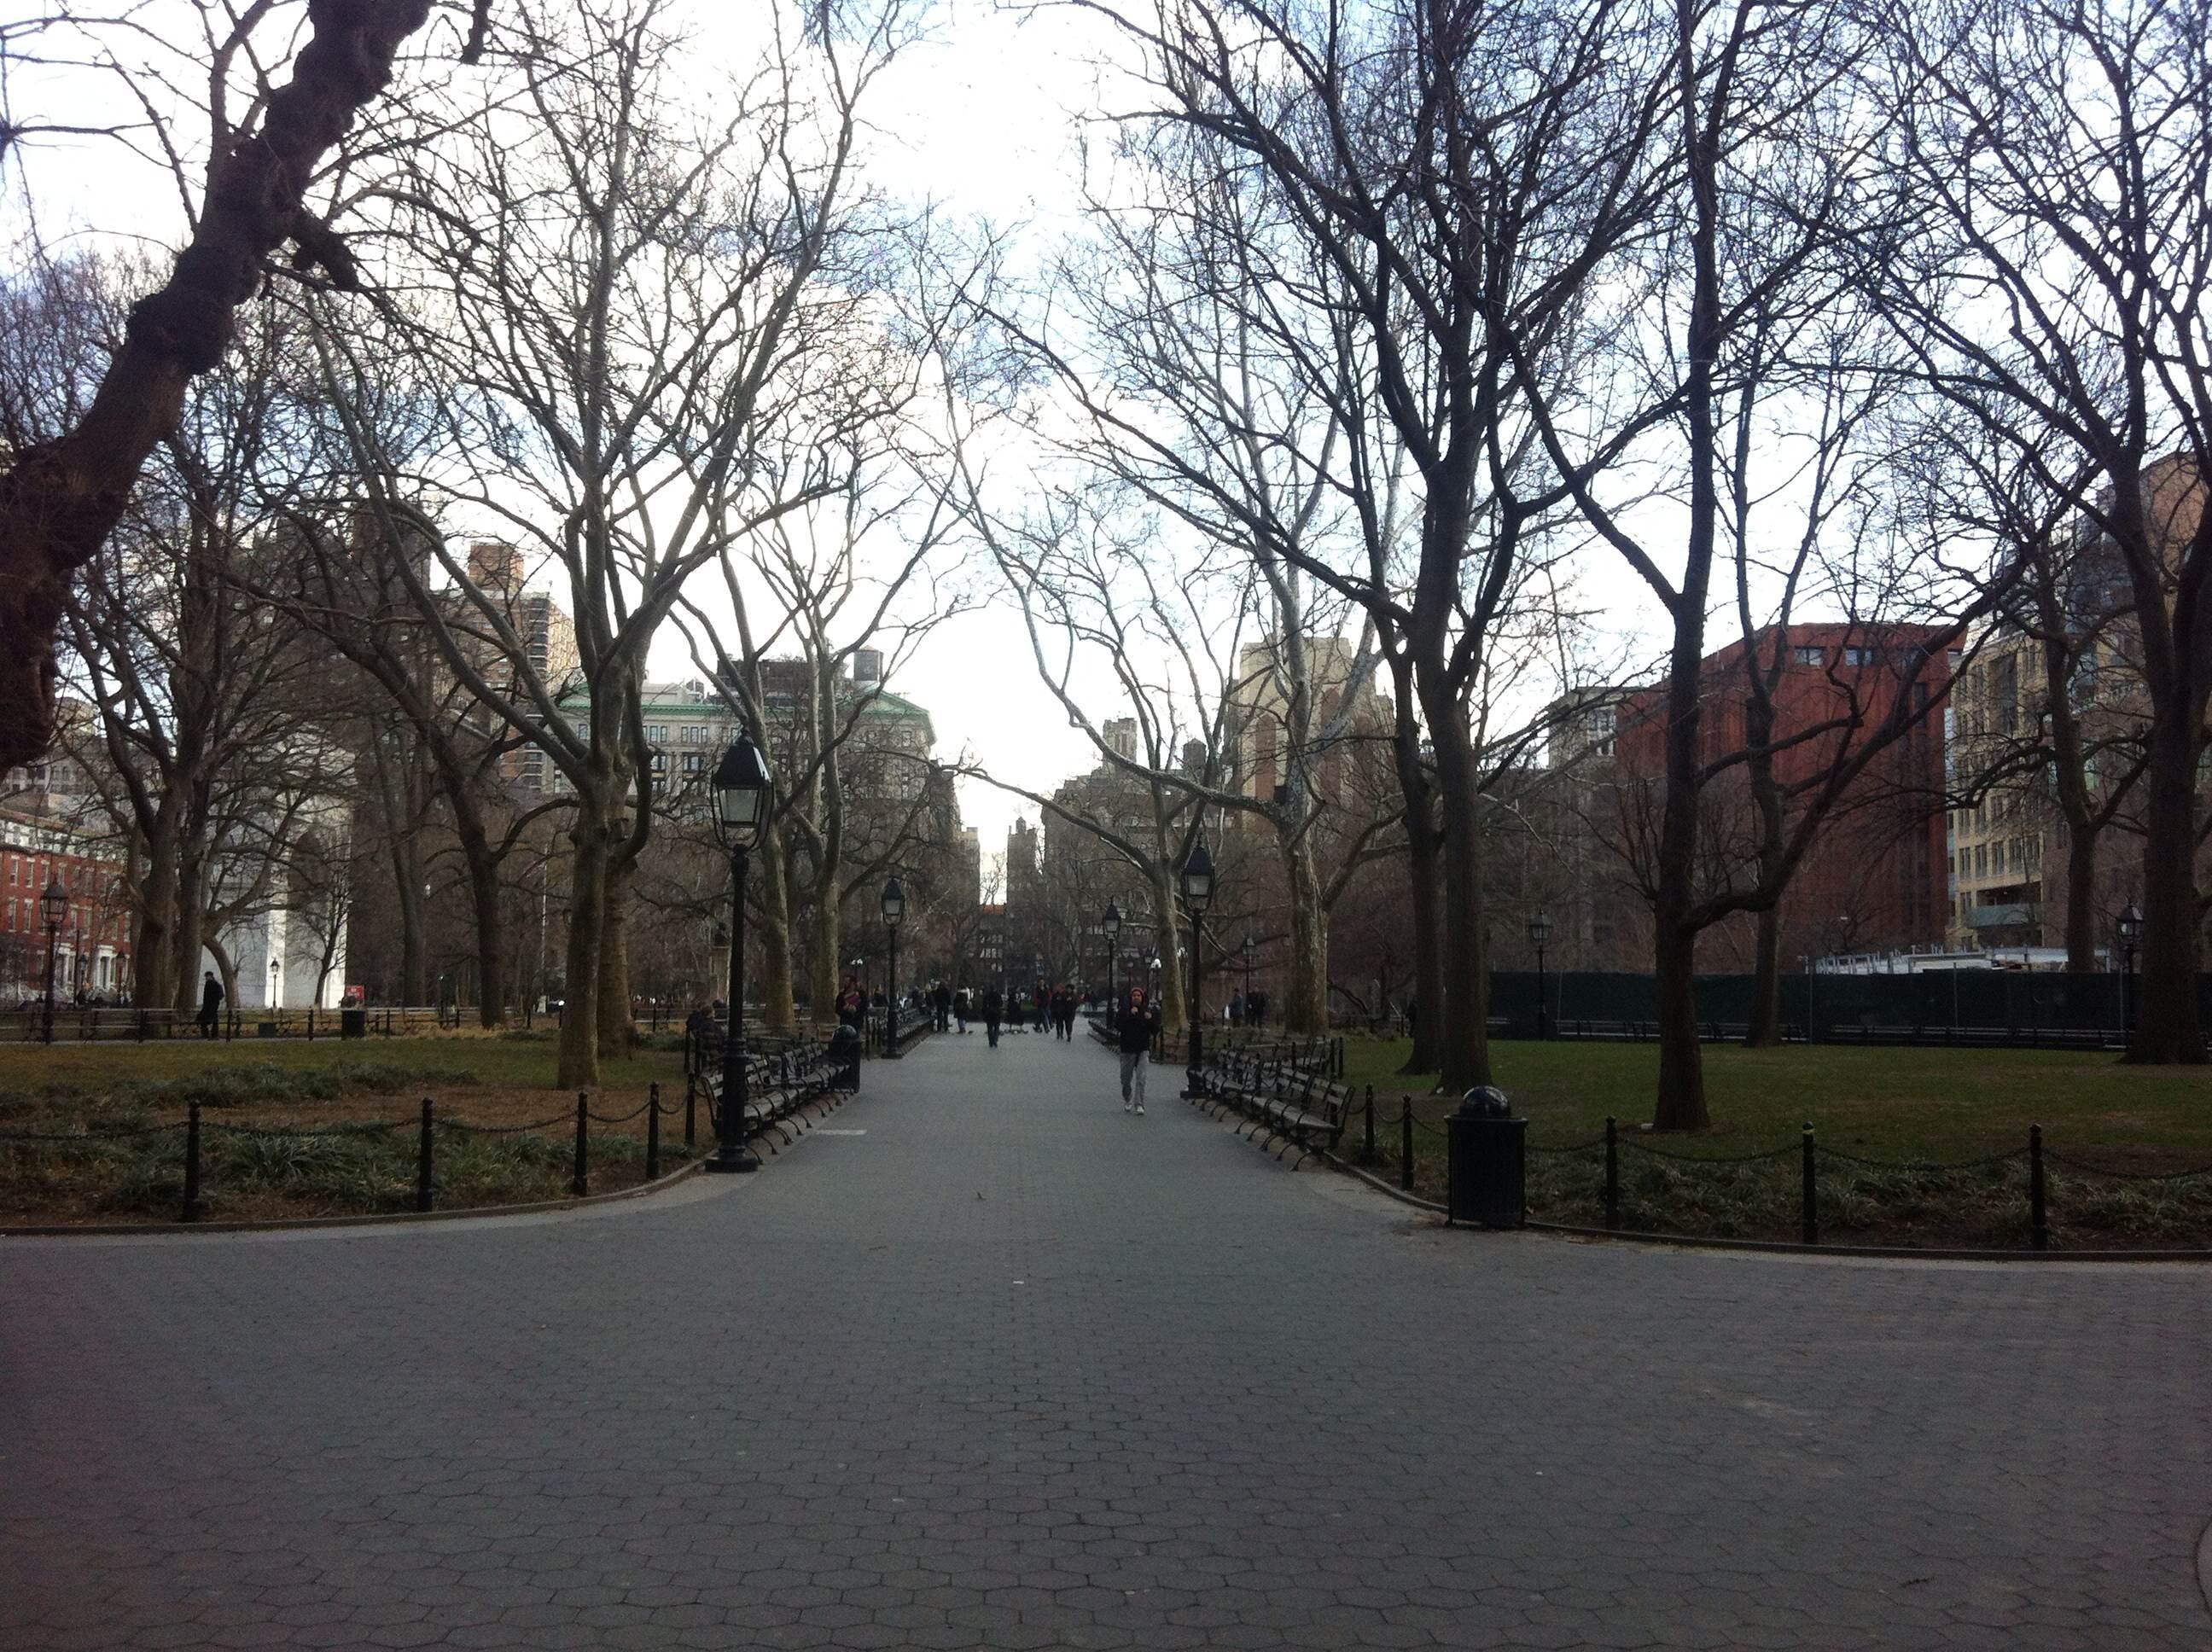 Calle en Washington Square Park